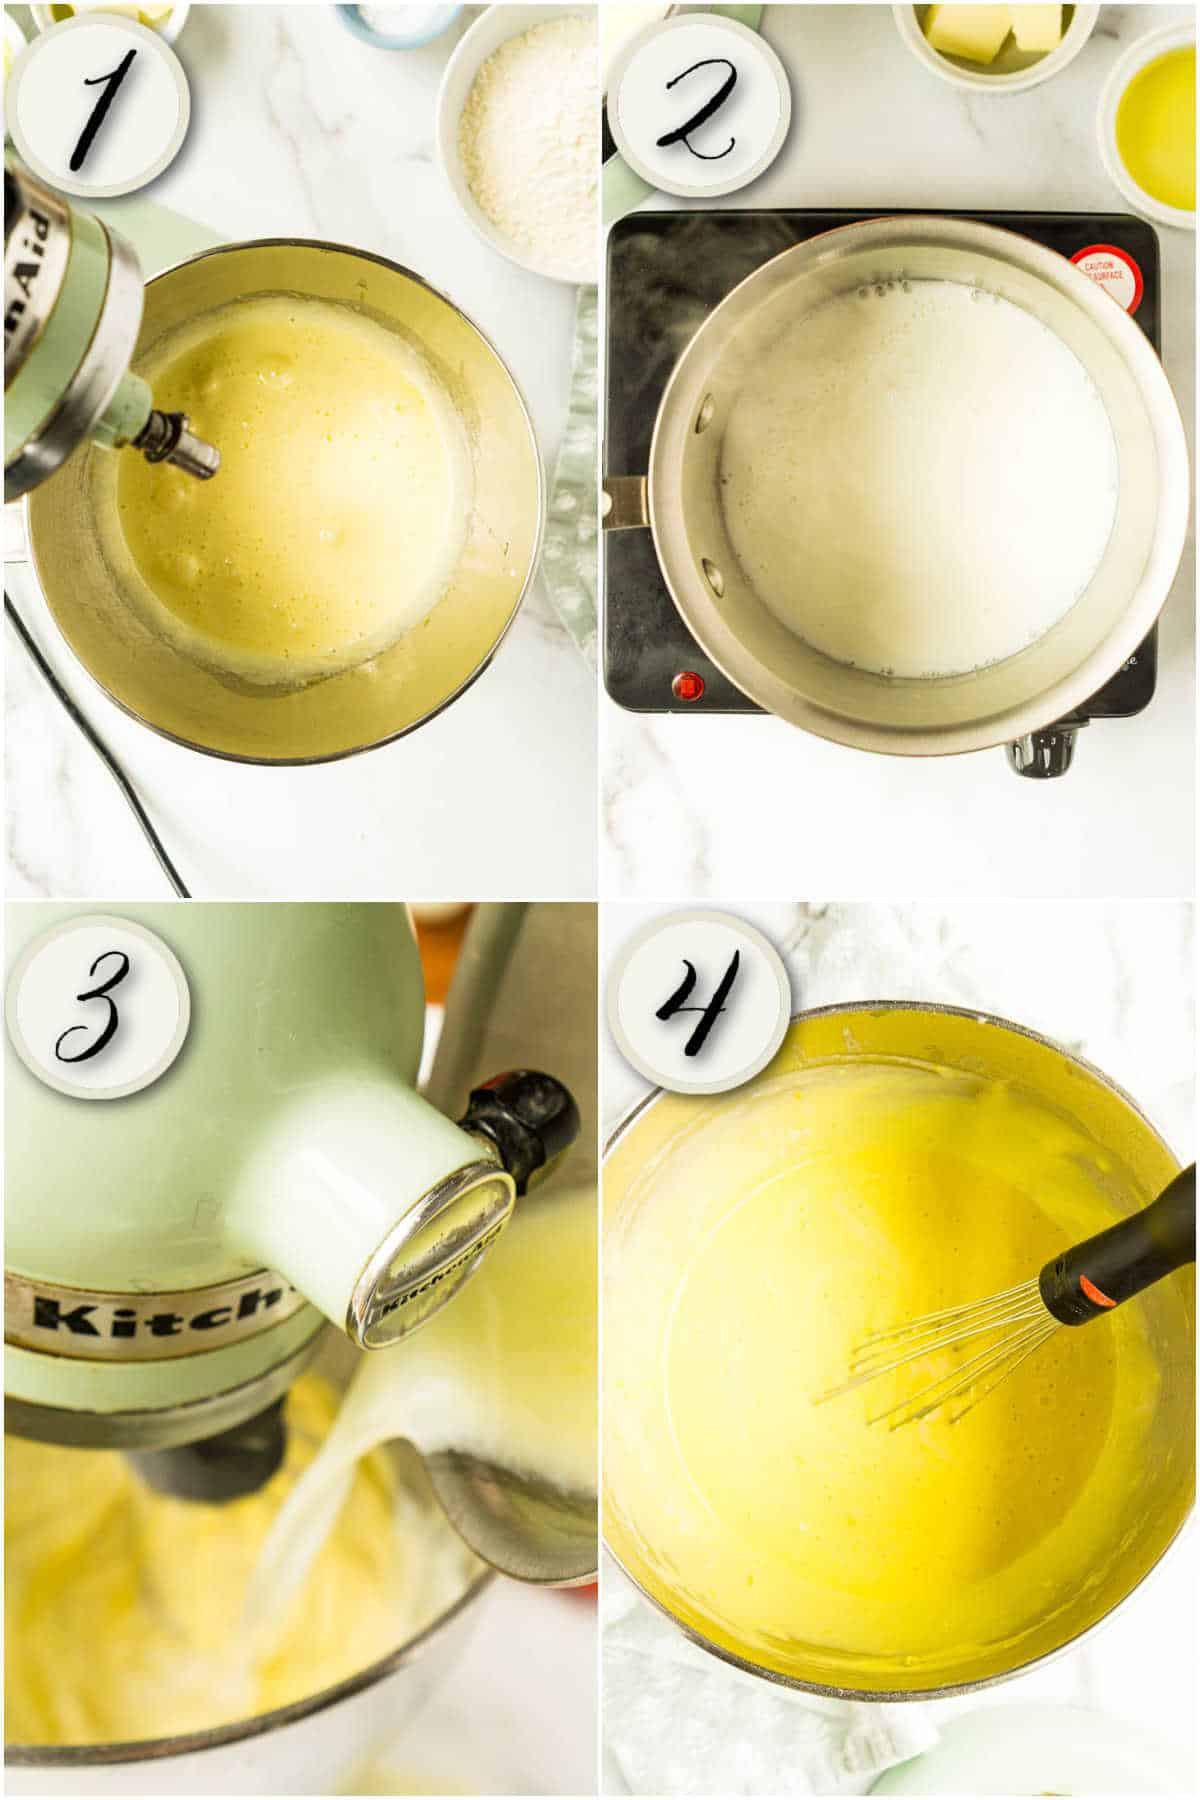 grid of 4 images: cake batter sugar and eggs, hot milk, pouring milk intoo batter, stirring lemon juice and zest in by hand